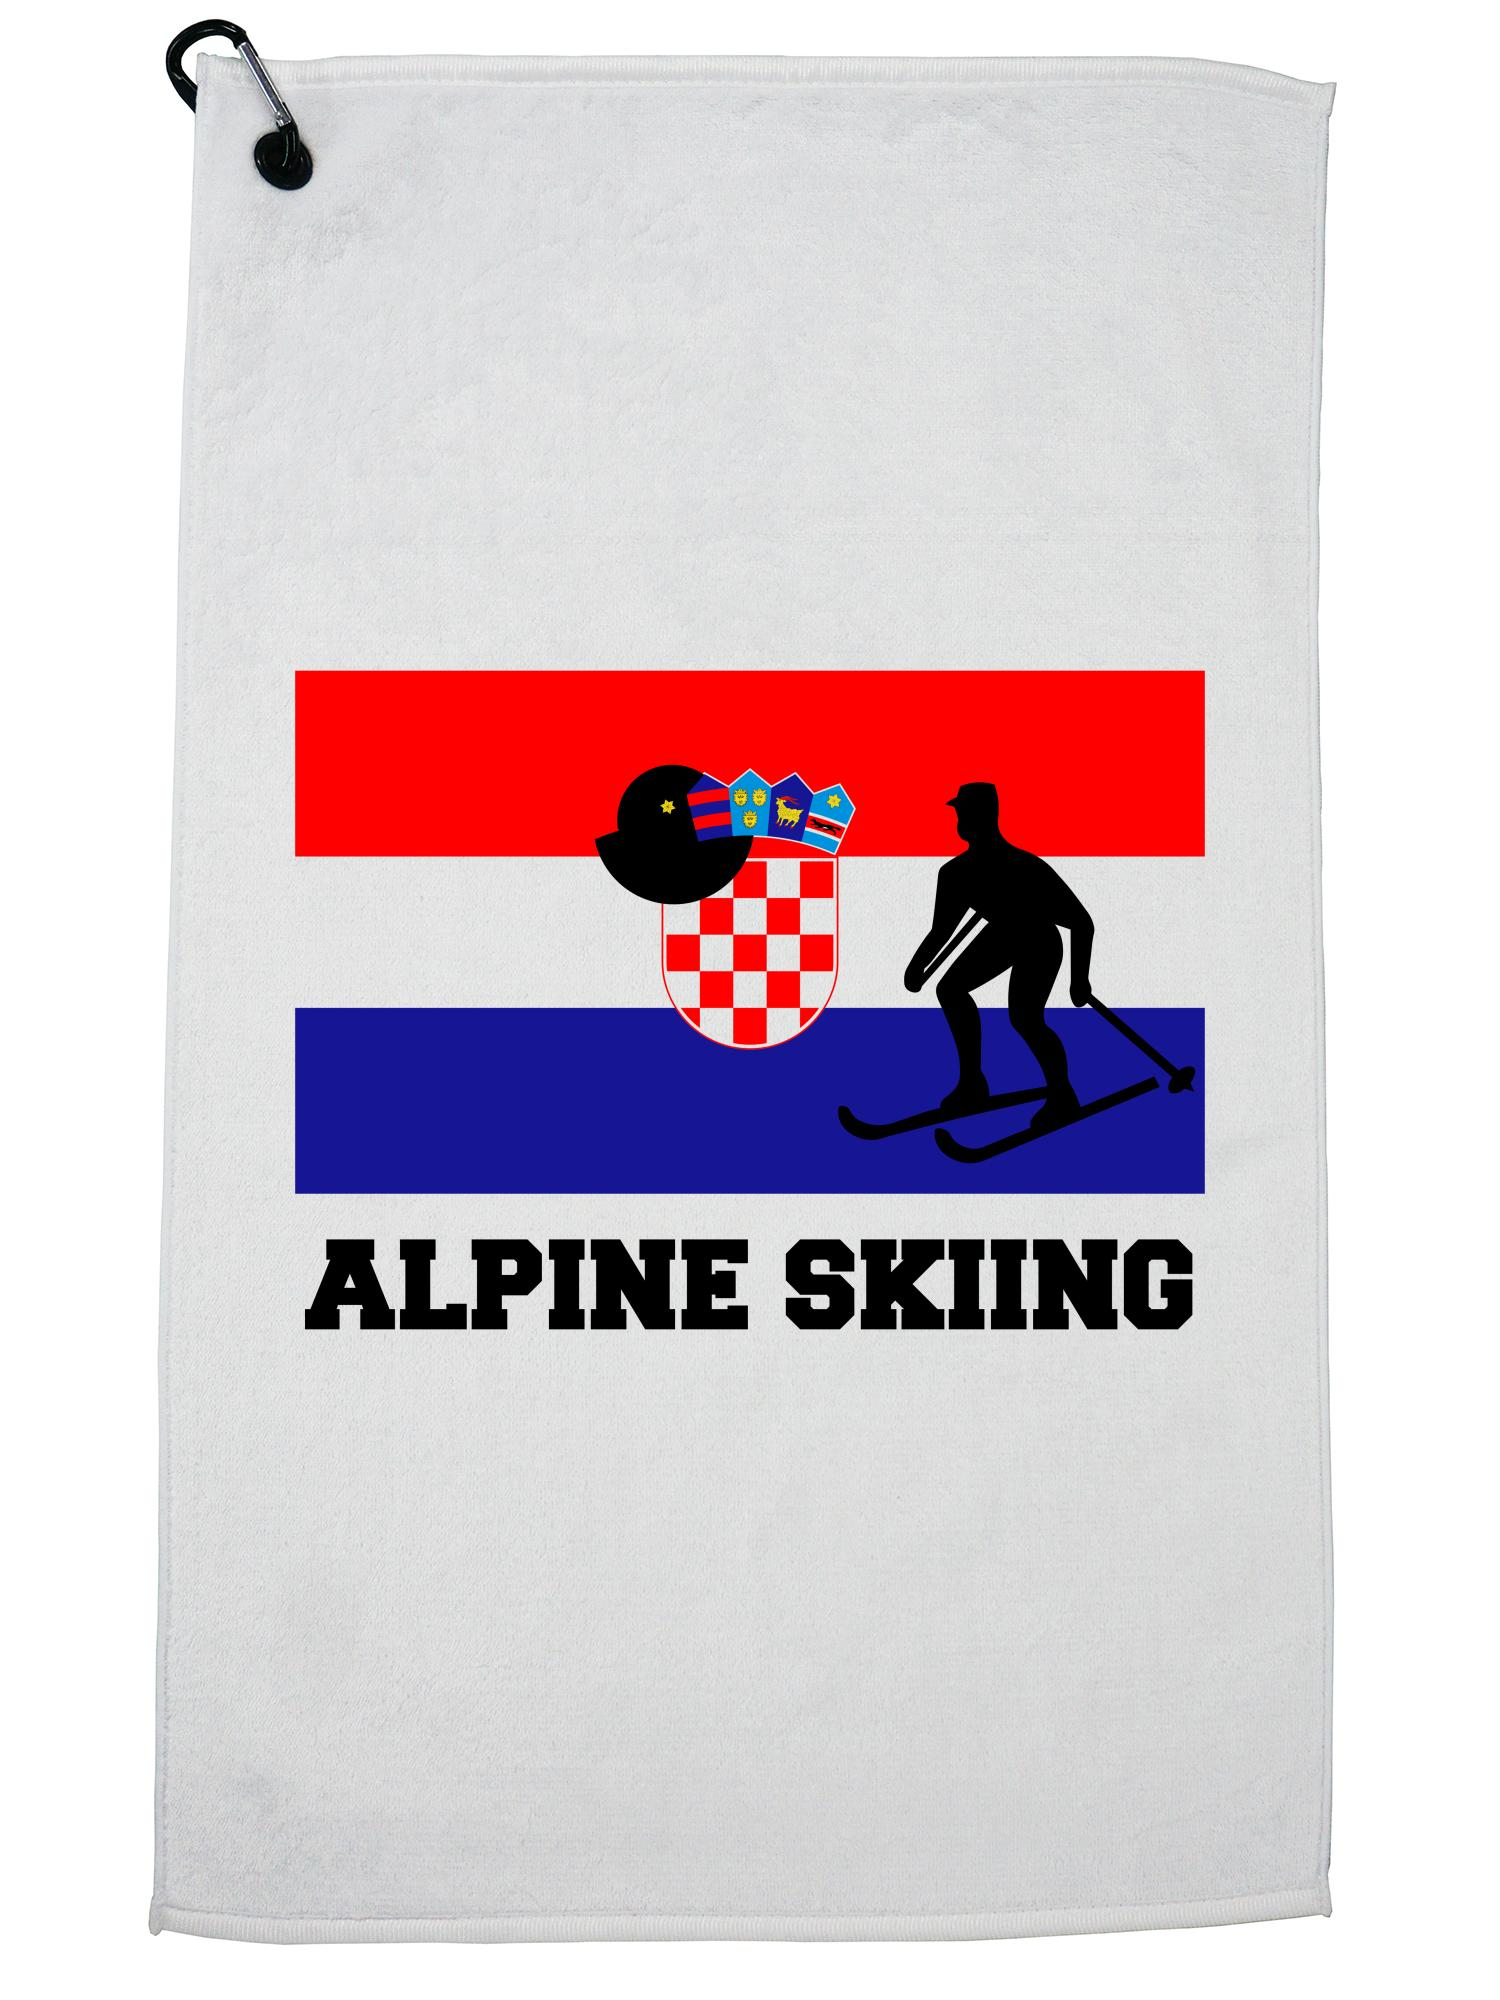 Croatia Olympic Alpine Skiing Flag Silhouette Golf Towel with Carabiner Clip by Hollywood Thread